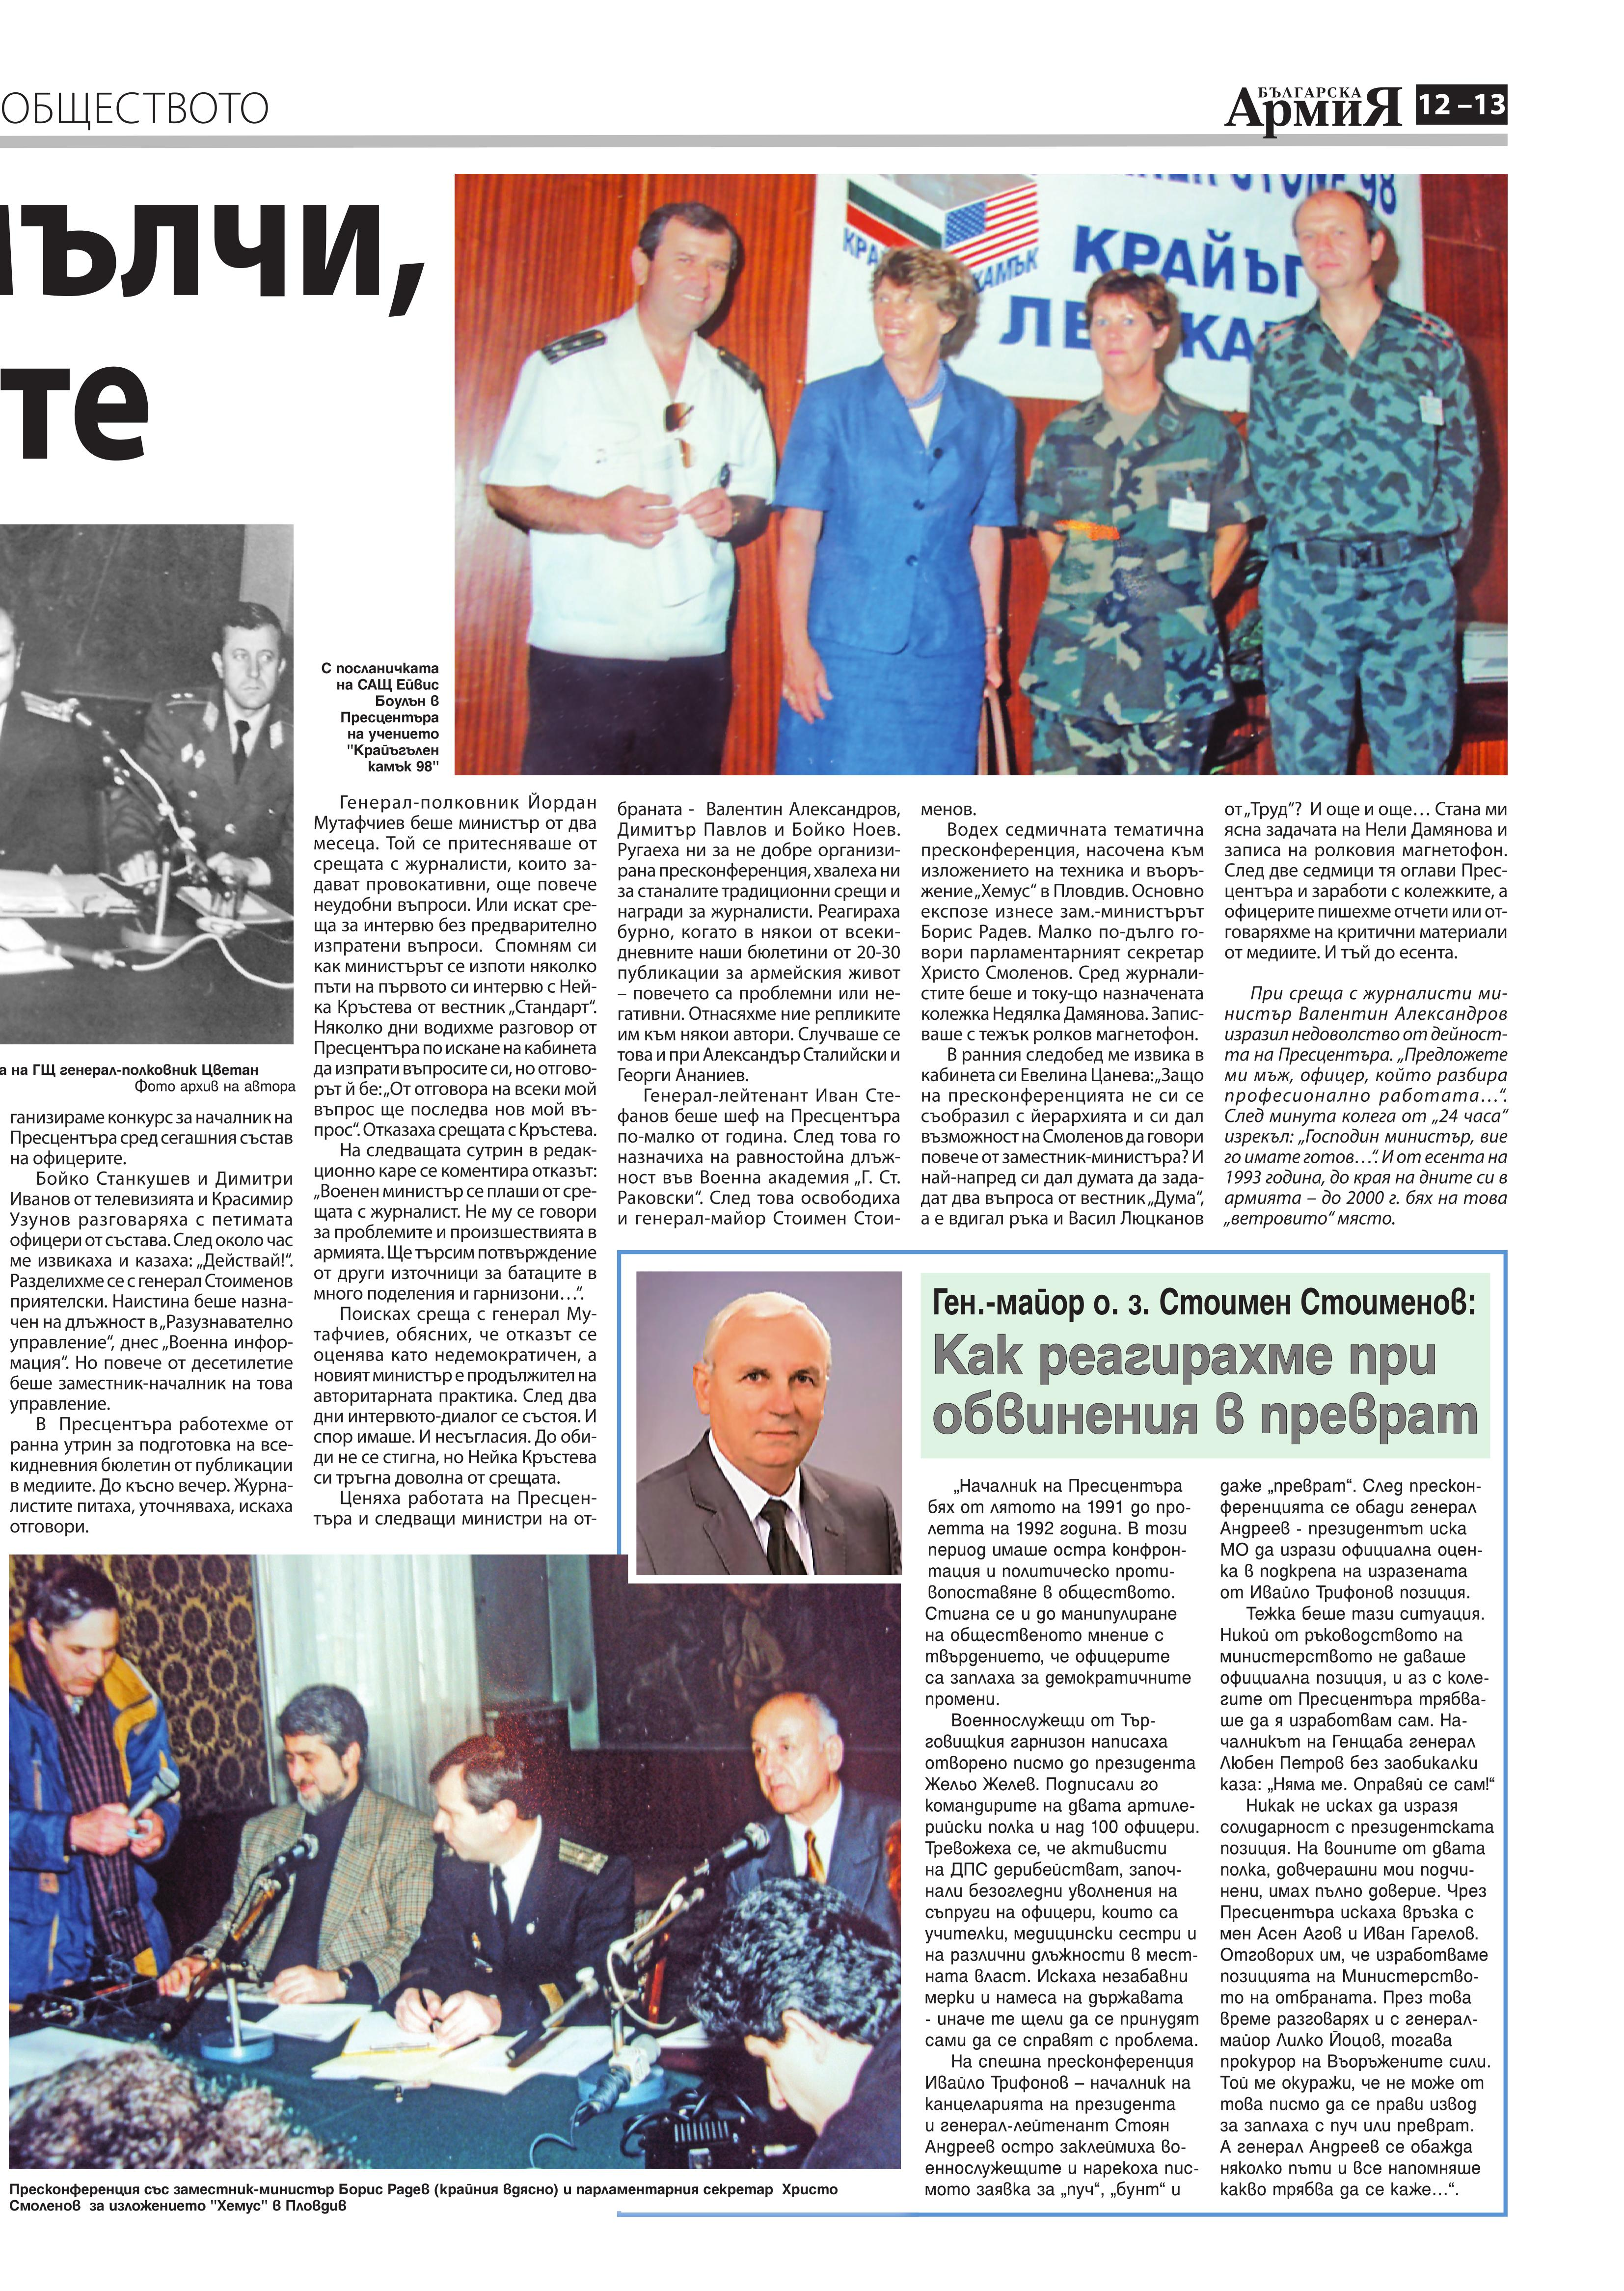 https://www.armymedia.bg/wp-content/uploads/2015/06/13.page1_-136.jpg